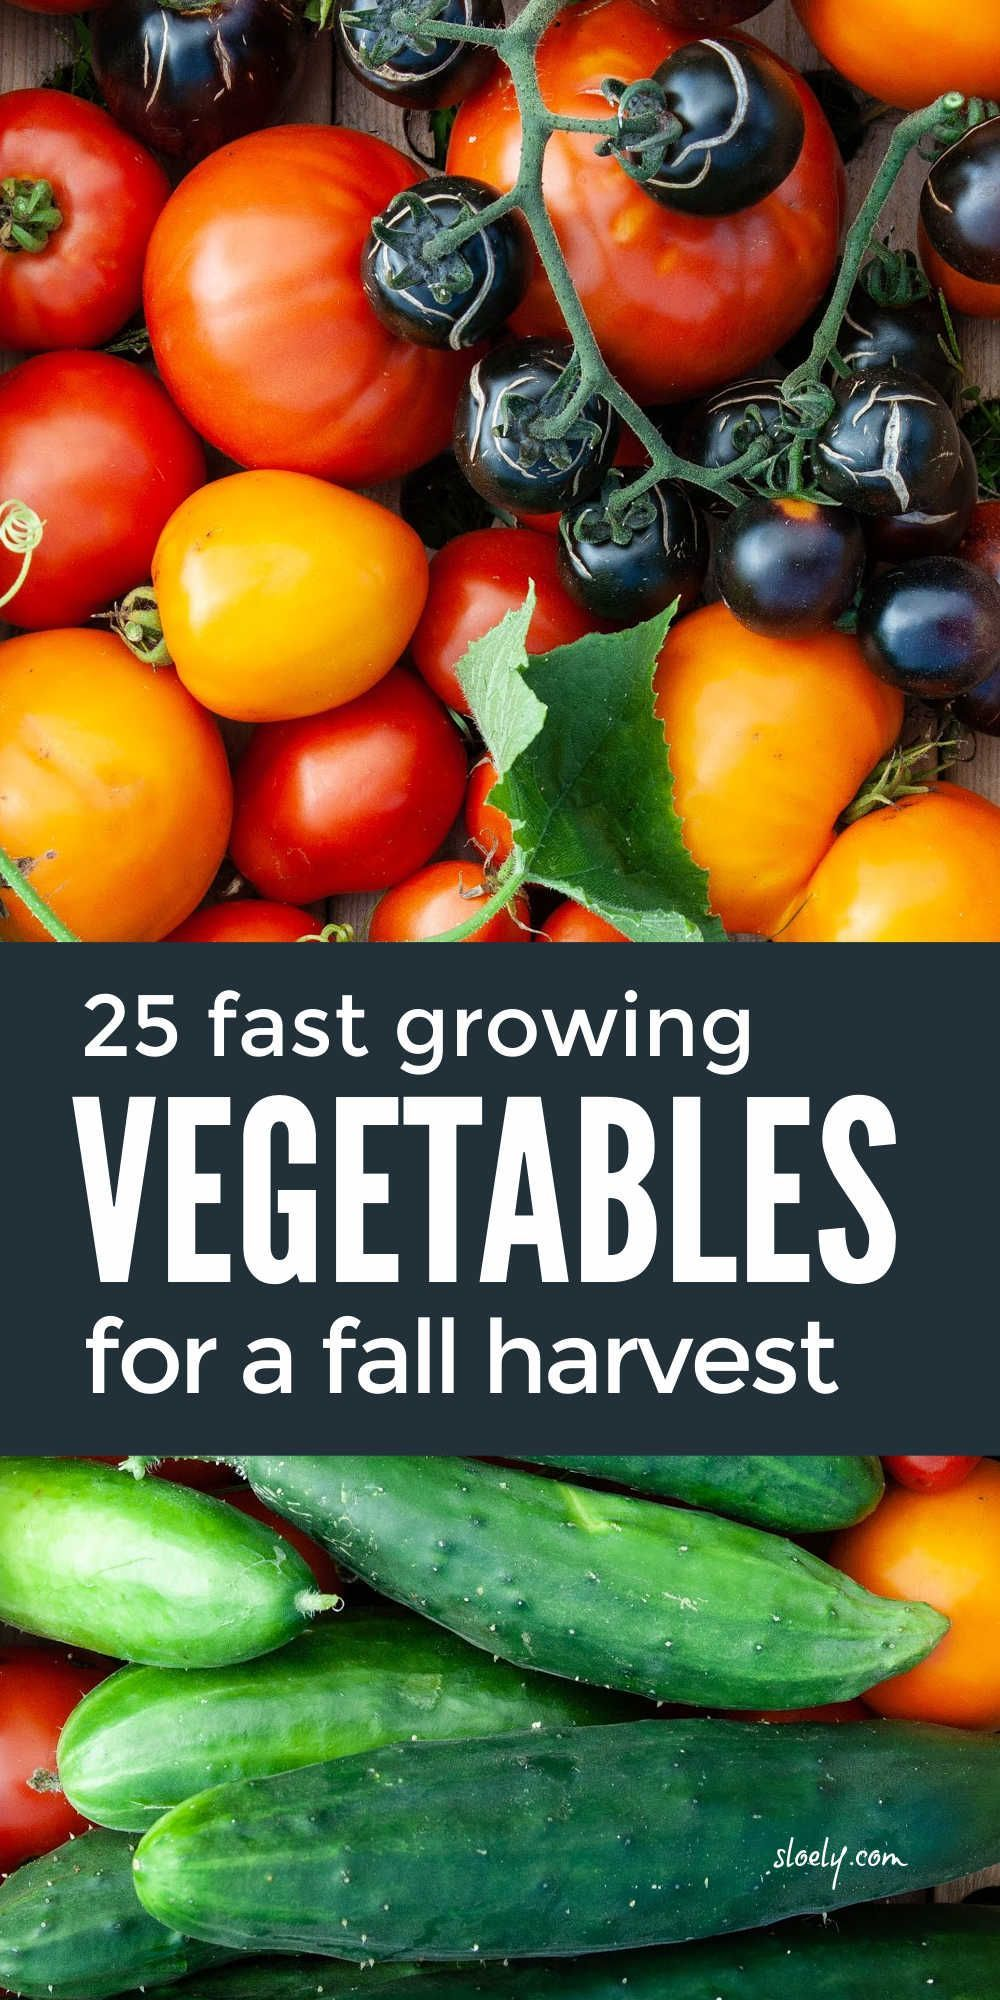 Fast growing vegetables you can plant now as seeds in pots for a fall harvest. These easy to grow vegetables are perfect for beginners to grow in containers if you don't have raised beds. #growingvegetables #fastgrowingvegetables #growingvegetablesinpots #growingvegetablesincontainers #fallharvest #fallvegetables